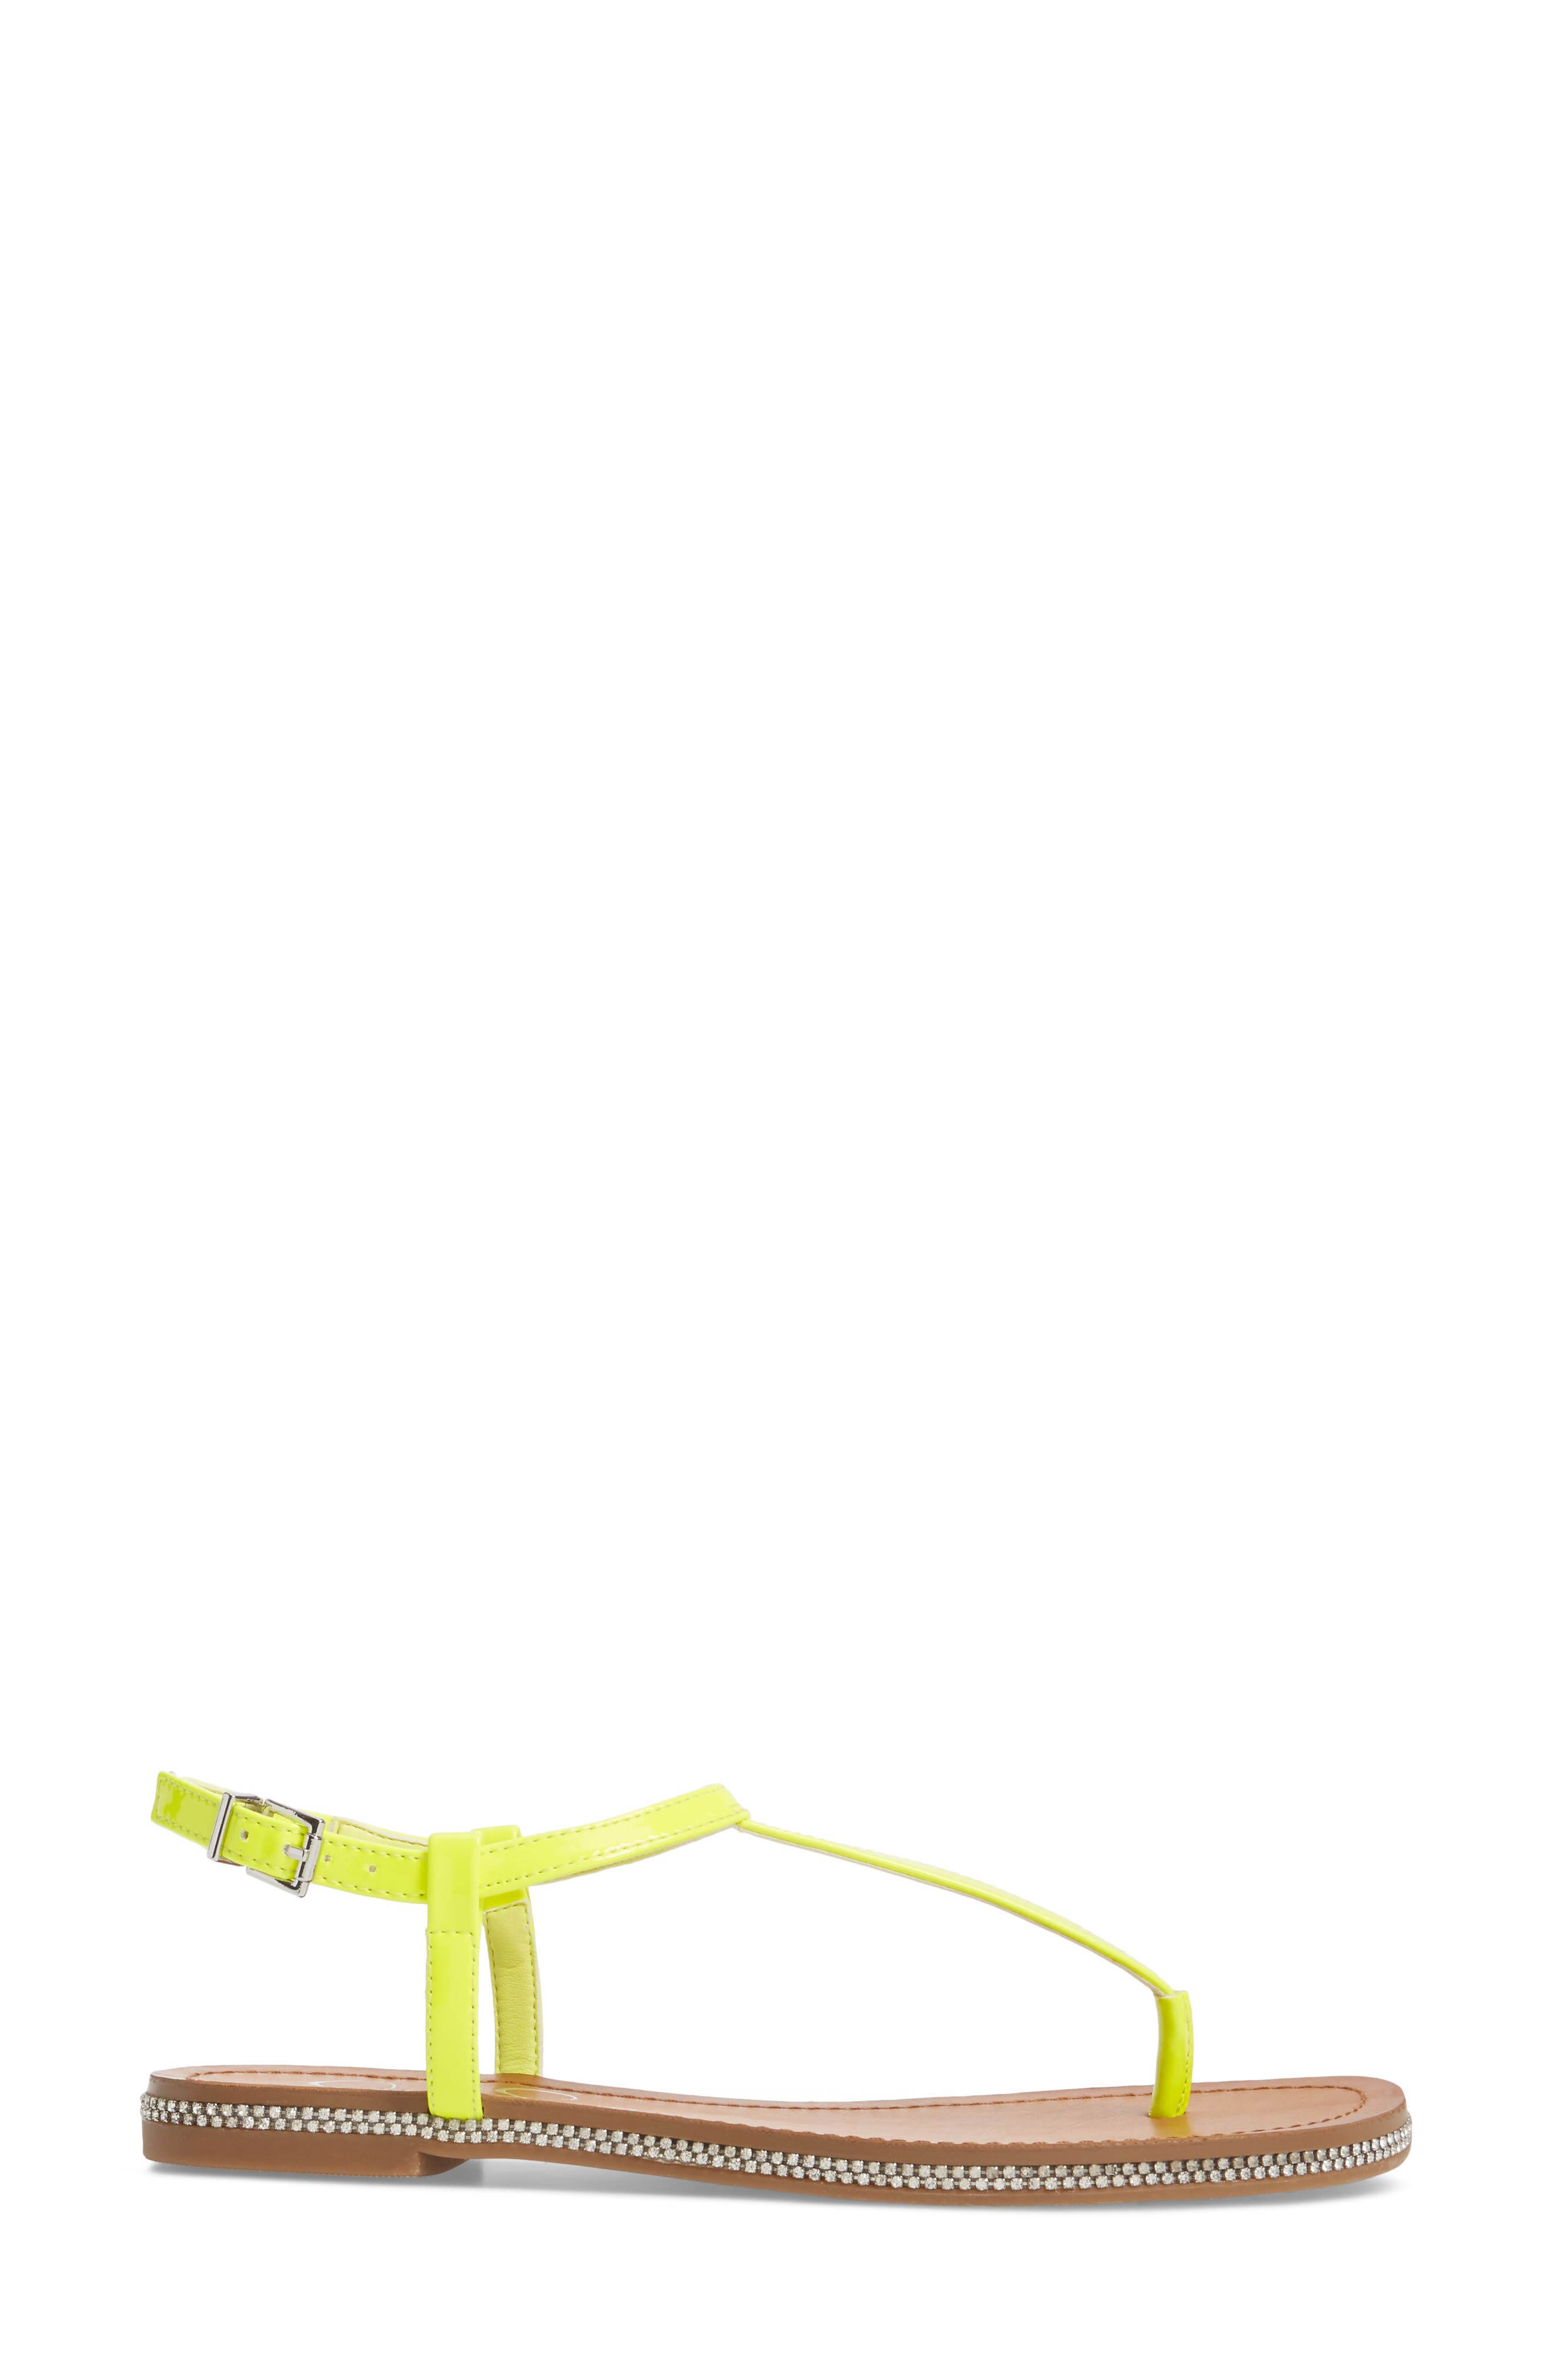 Brimah Sandal,                             Alternate thumbnail 3, color,                             Yellow Shock